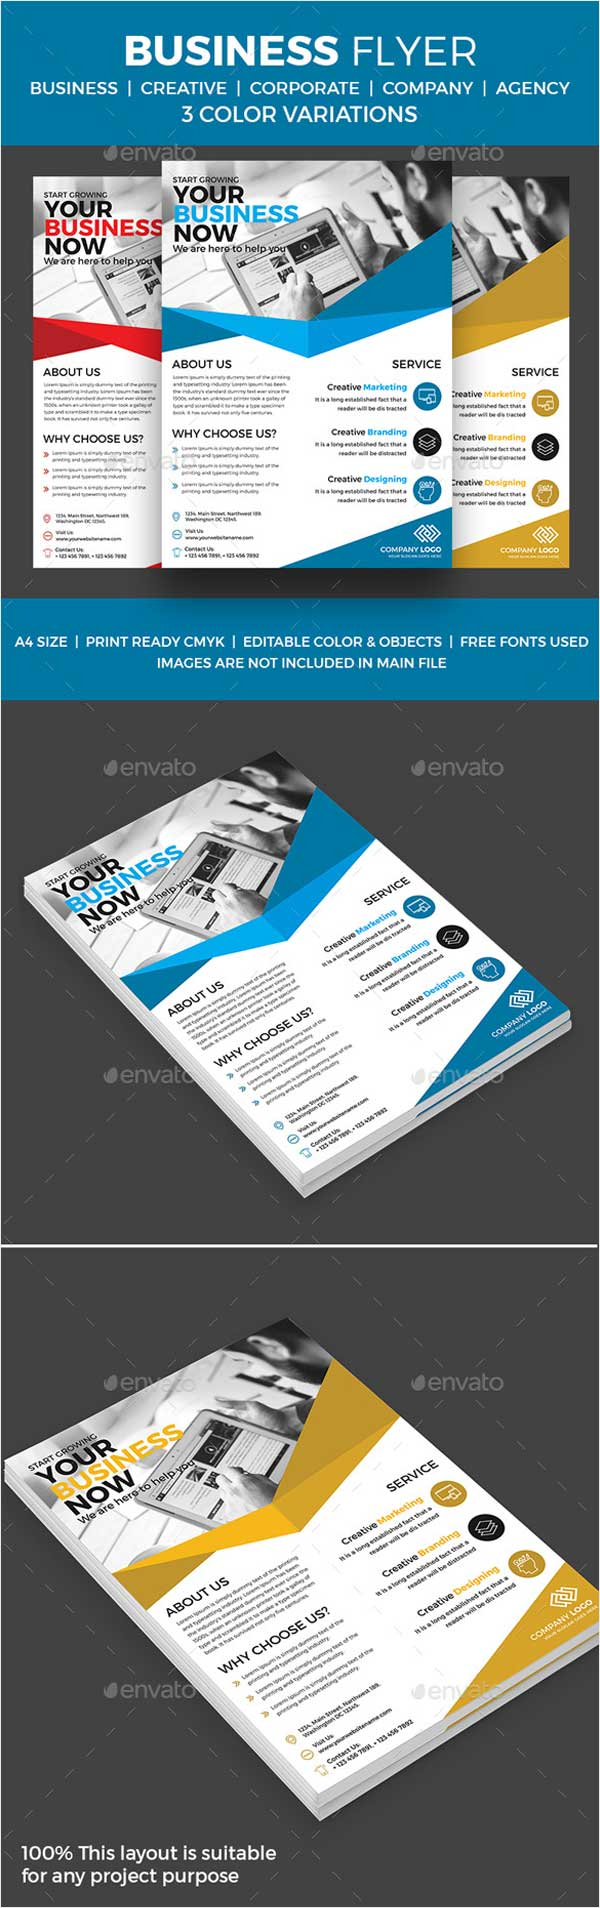 Business-Flyer-30